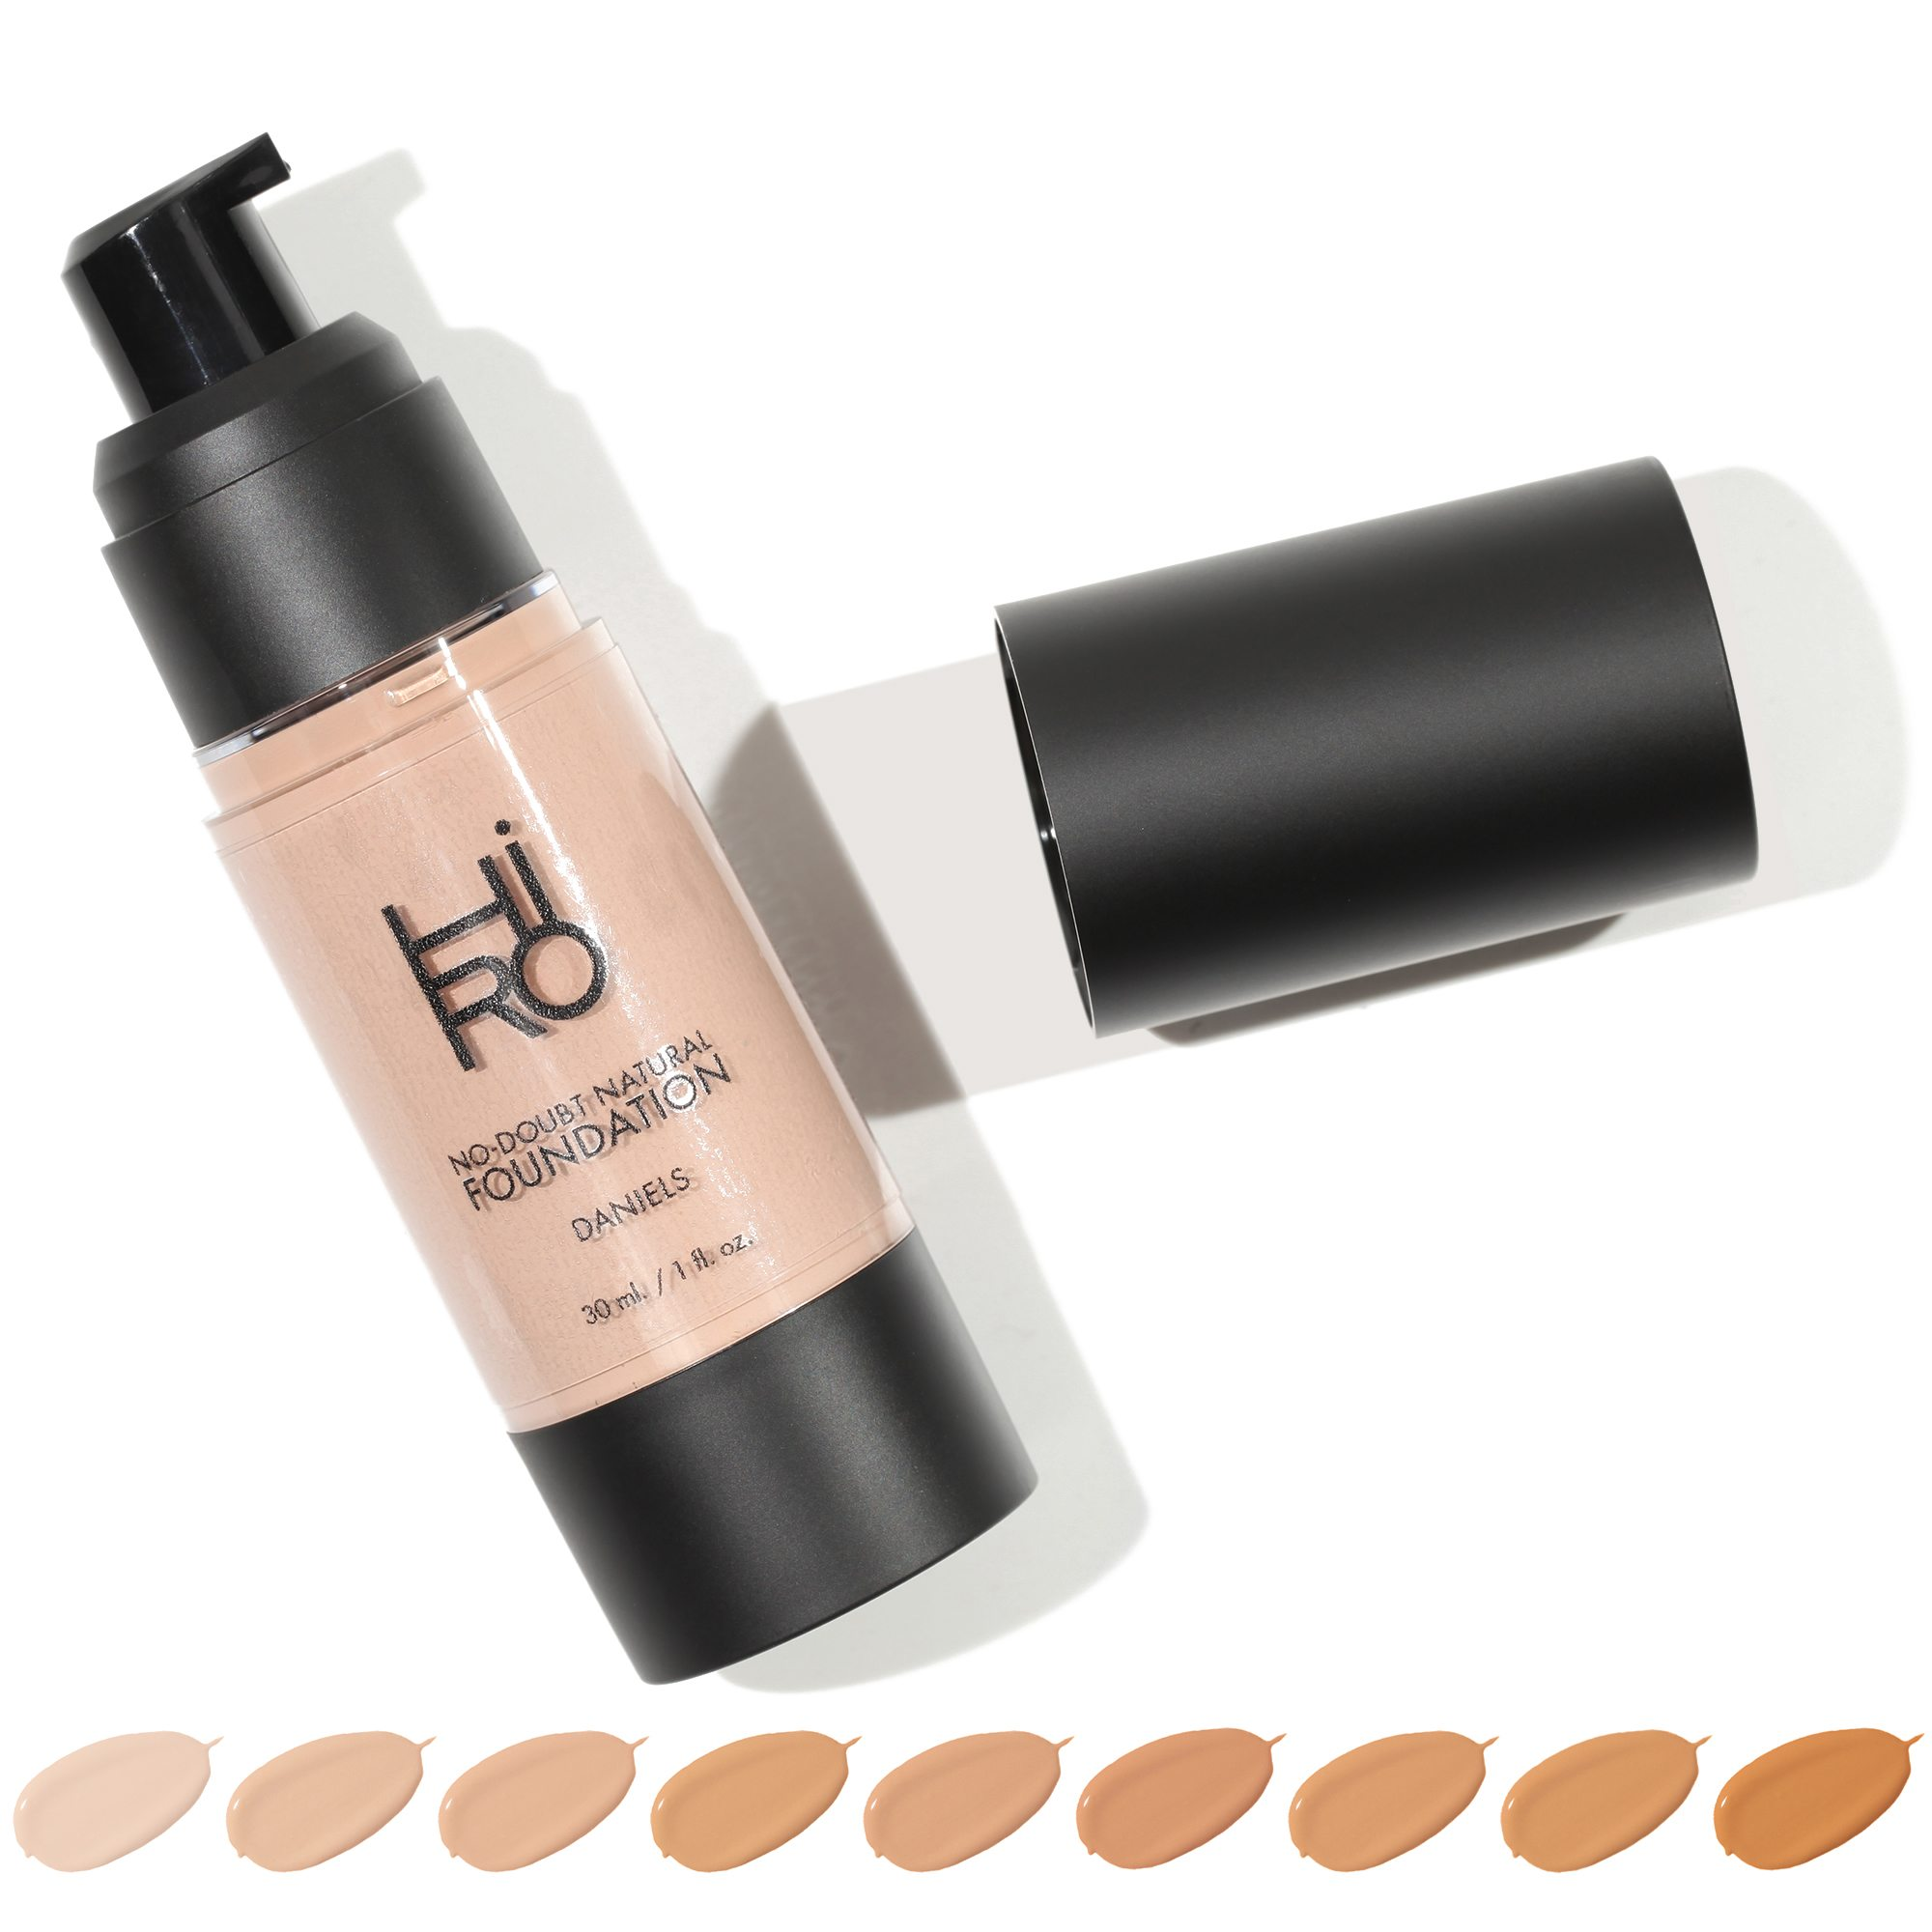 HIRO No Doubt Natural Vegan Organic Foundation with shades